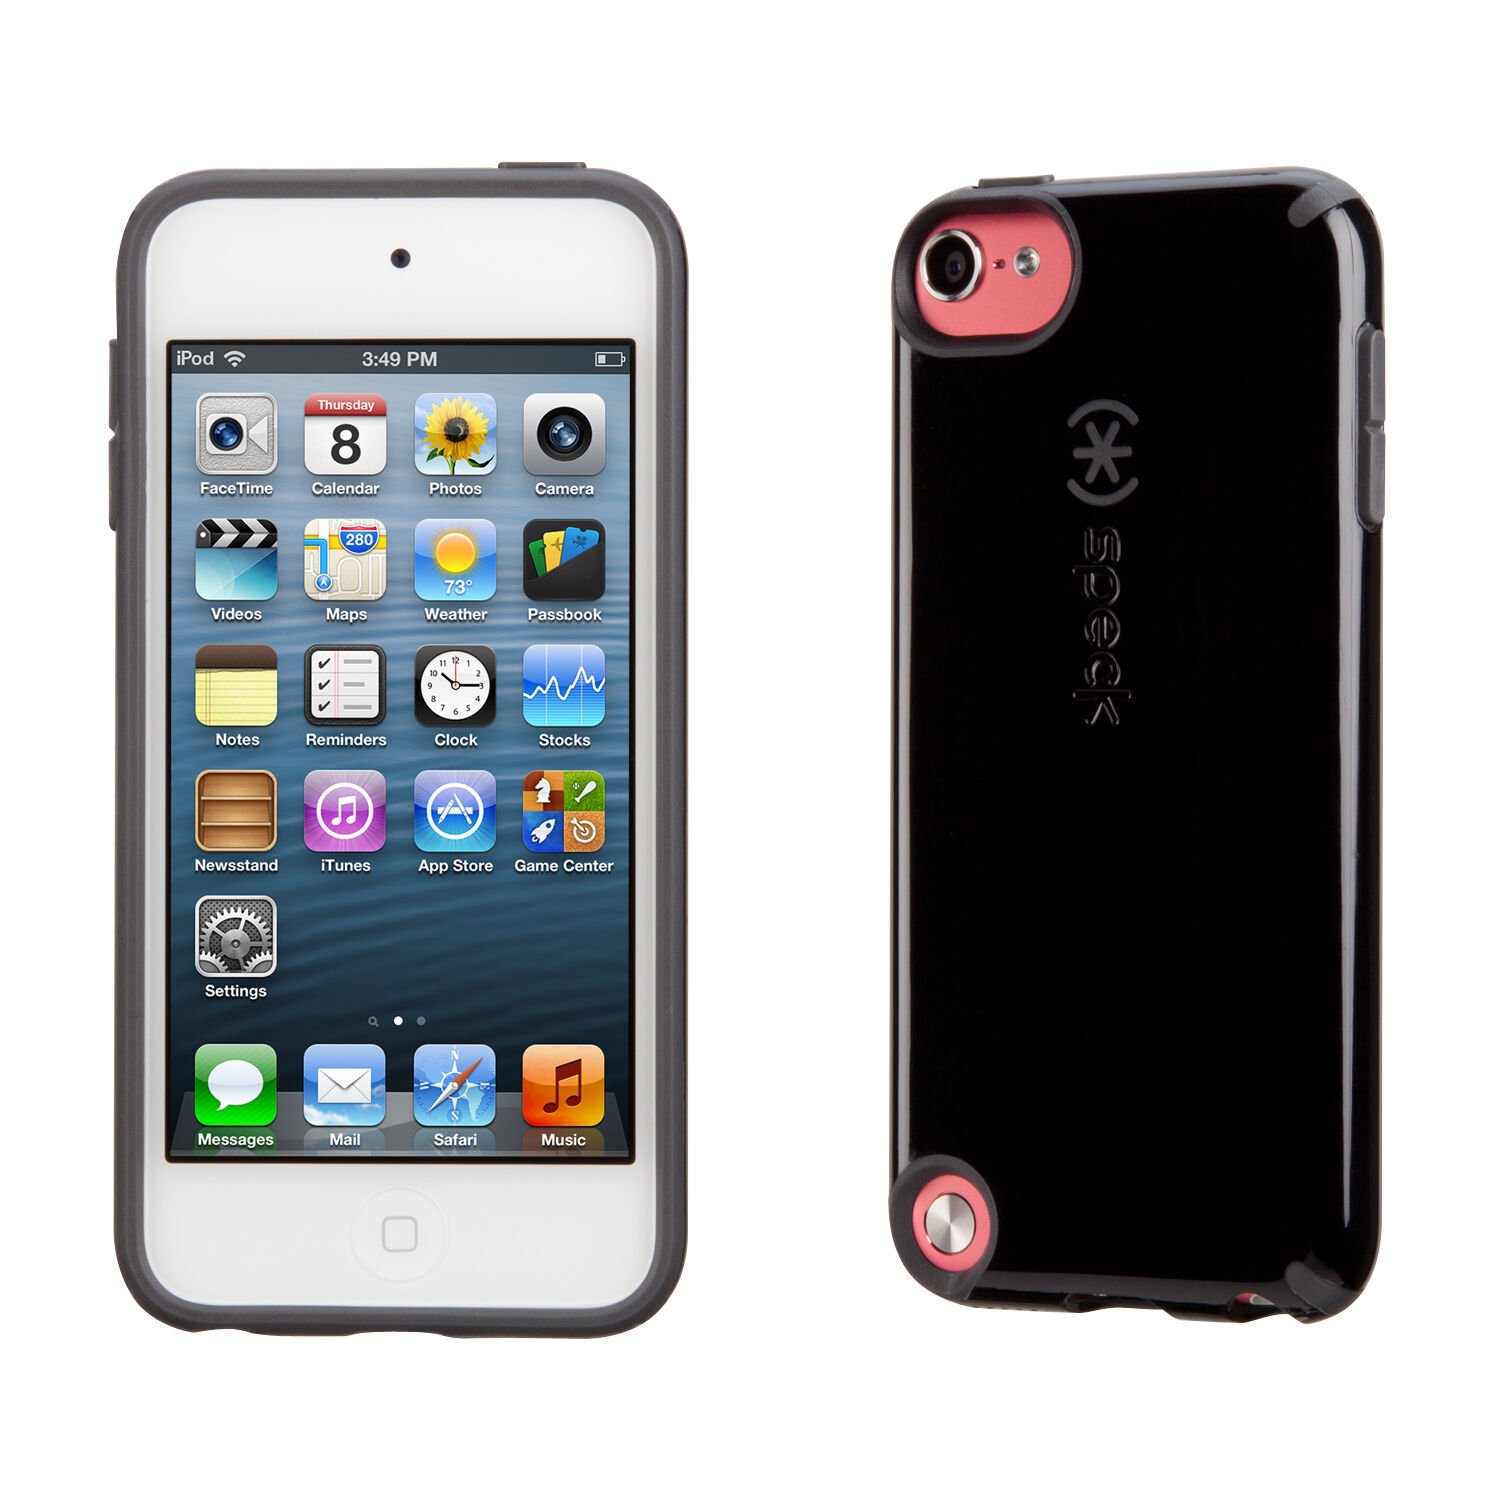 candyshell ipod touch 6g 5g cases. Black Bedroom Furniture Sets. Home Design Ideas